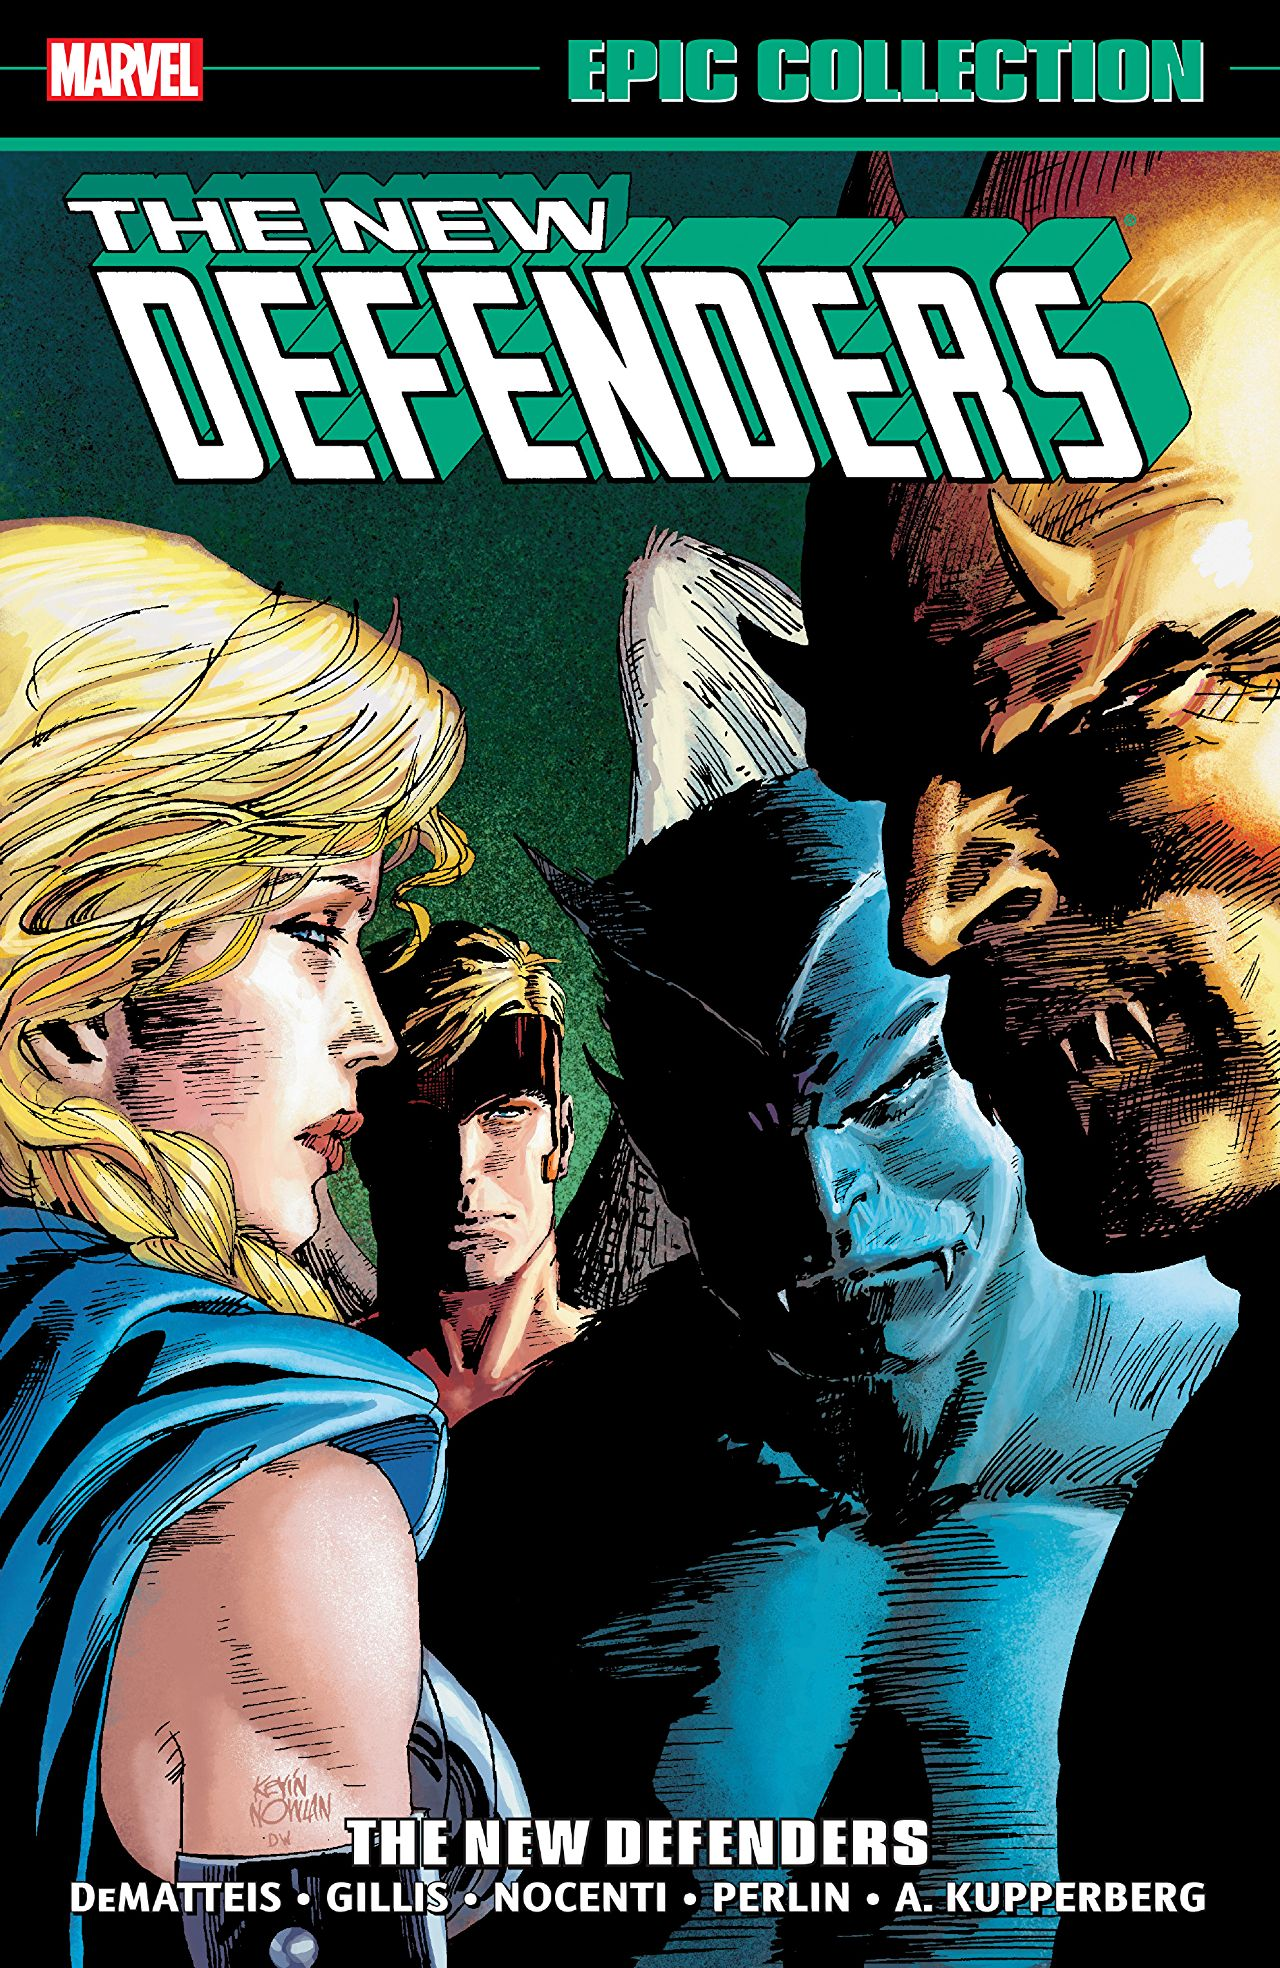 Defenders Epic Collection: The New Defenders review: A forgotten gem from decades past